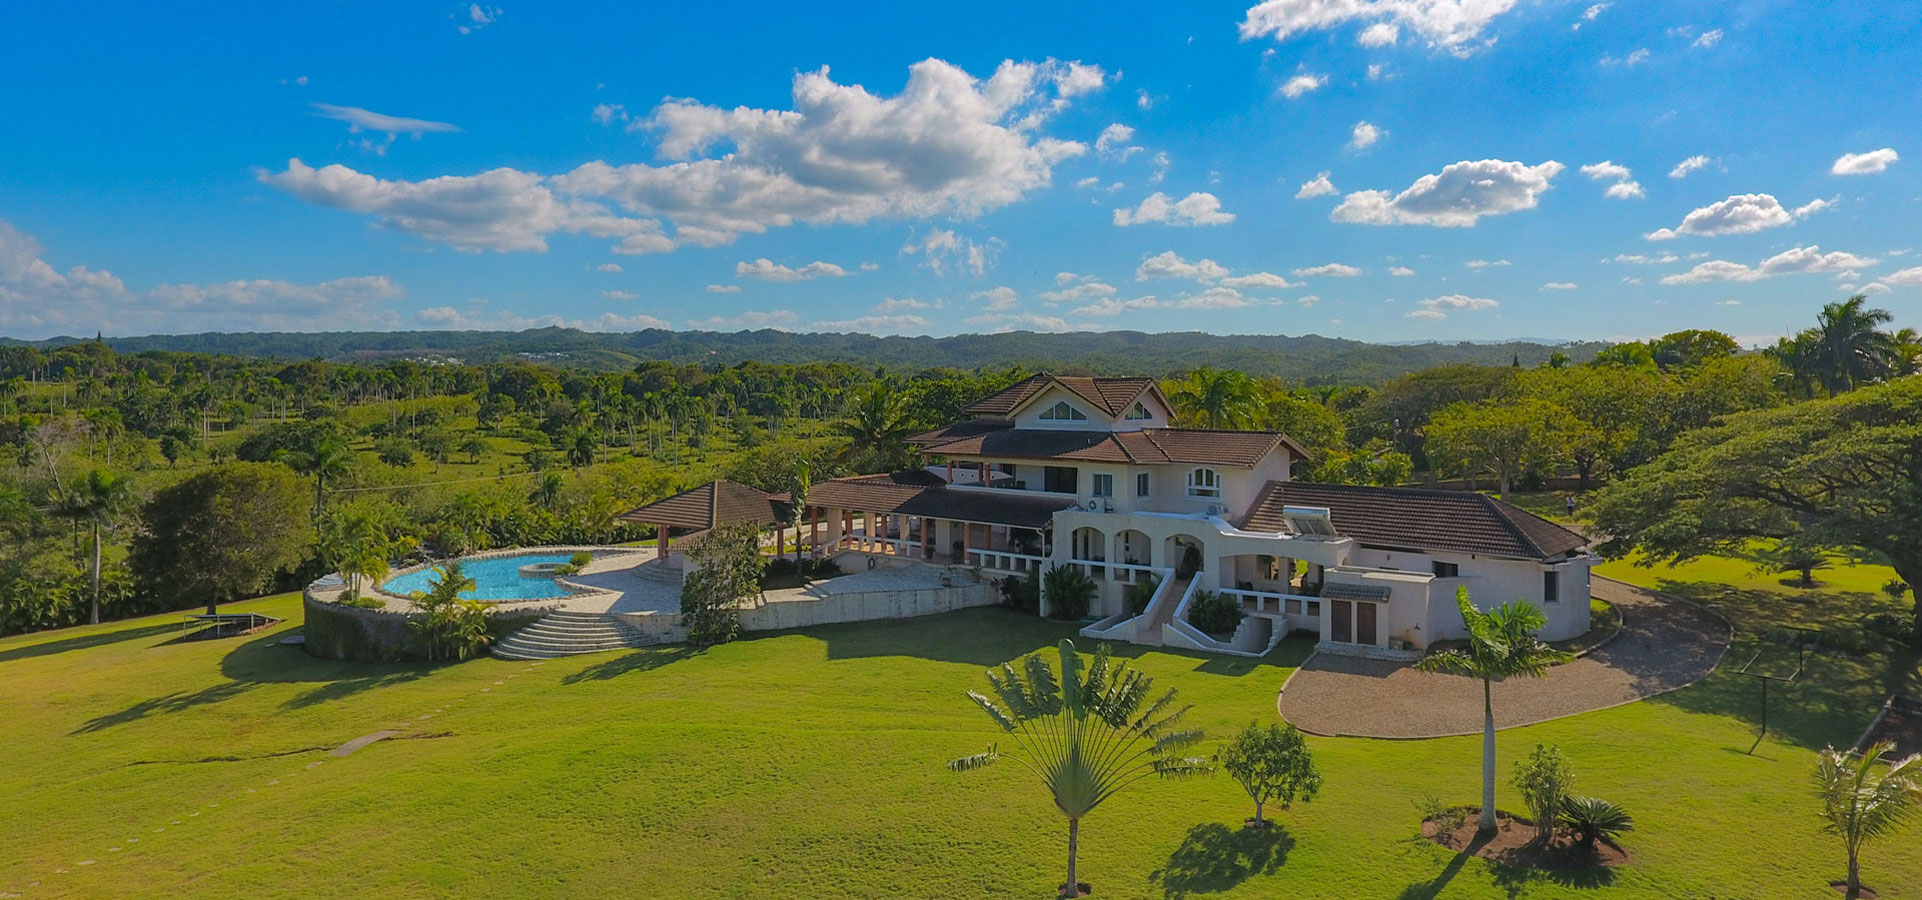 A Pearl of a Home wi in the Dominican Republic